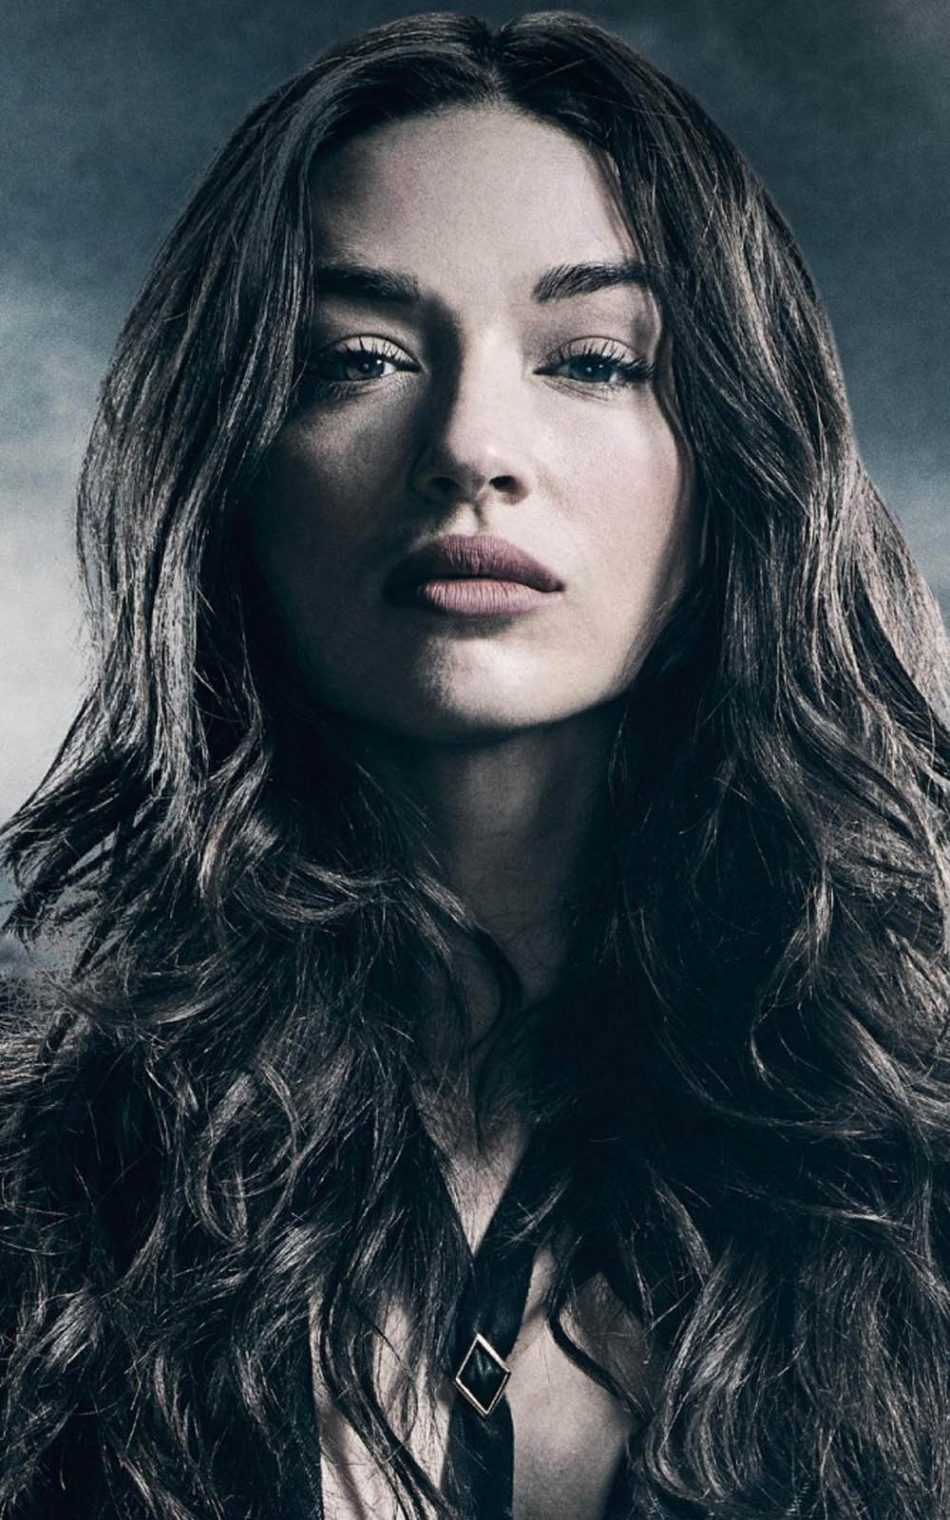 950x1520 - Crystal Reed Wallpapers 7